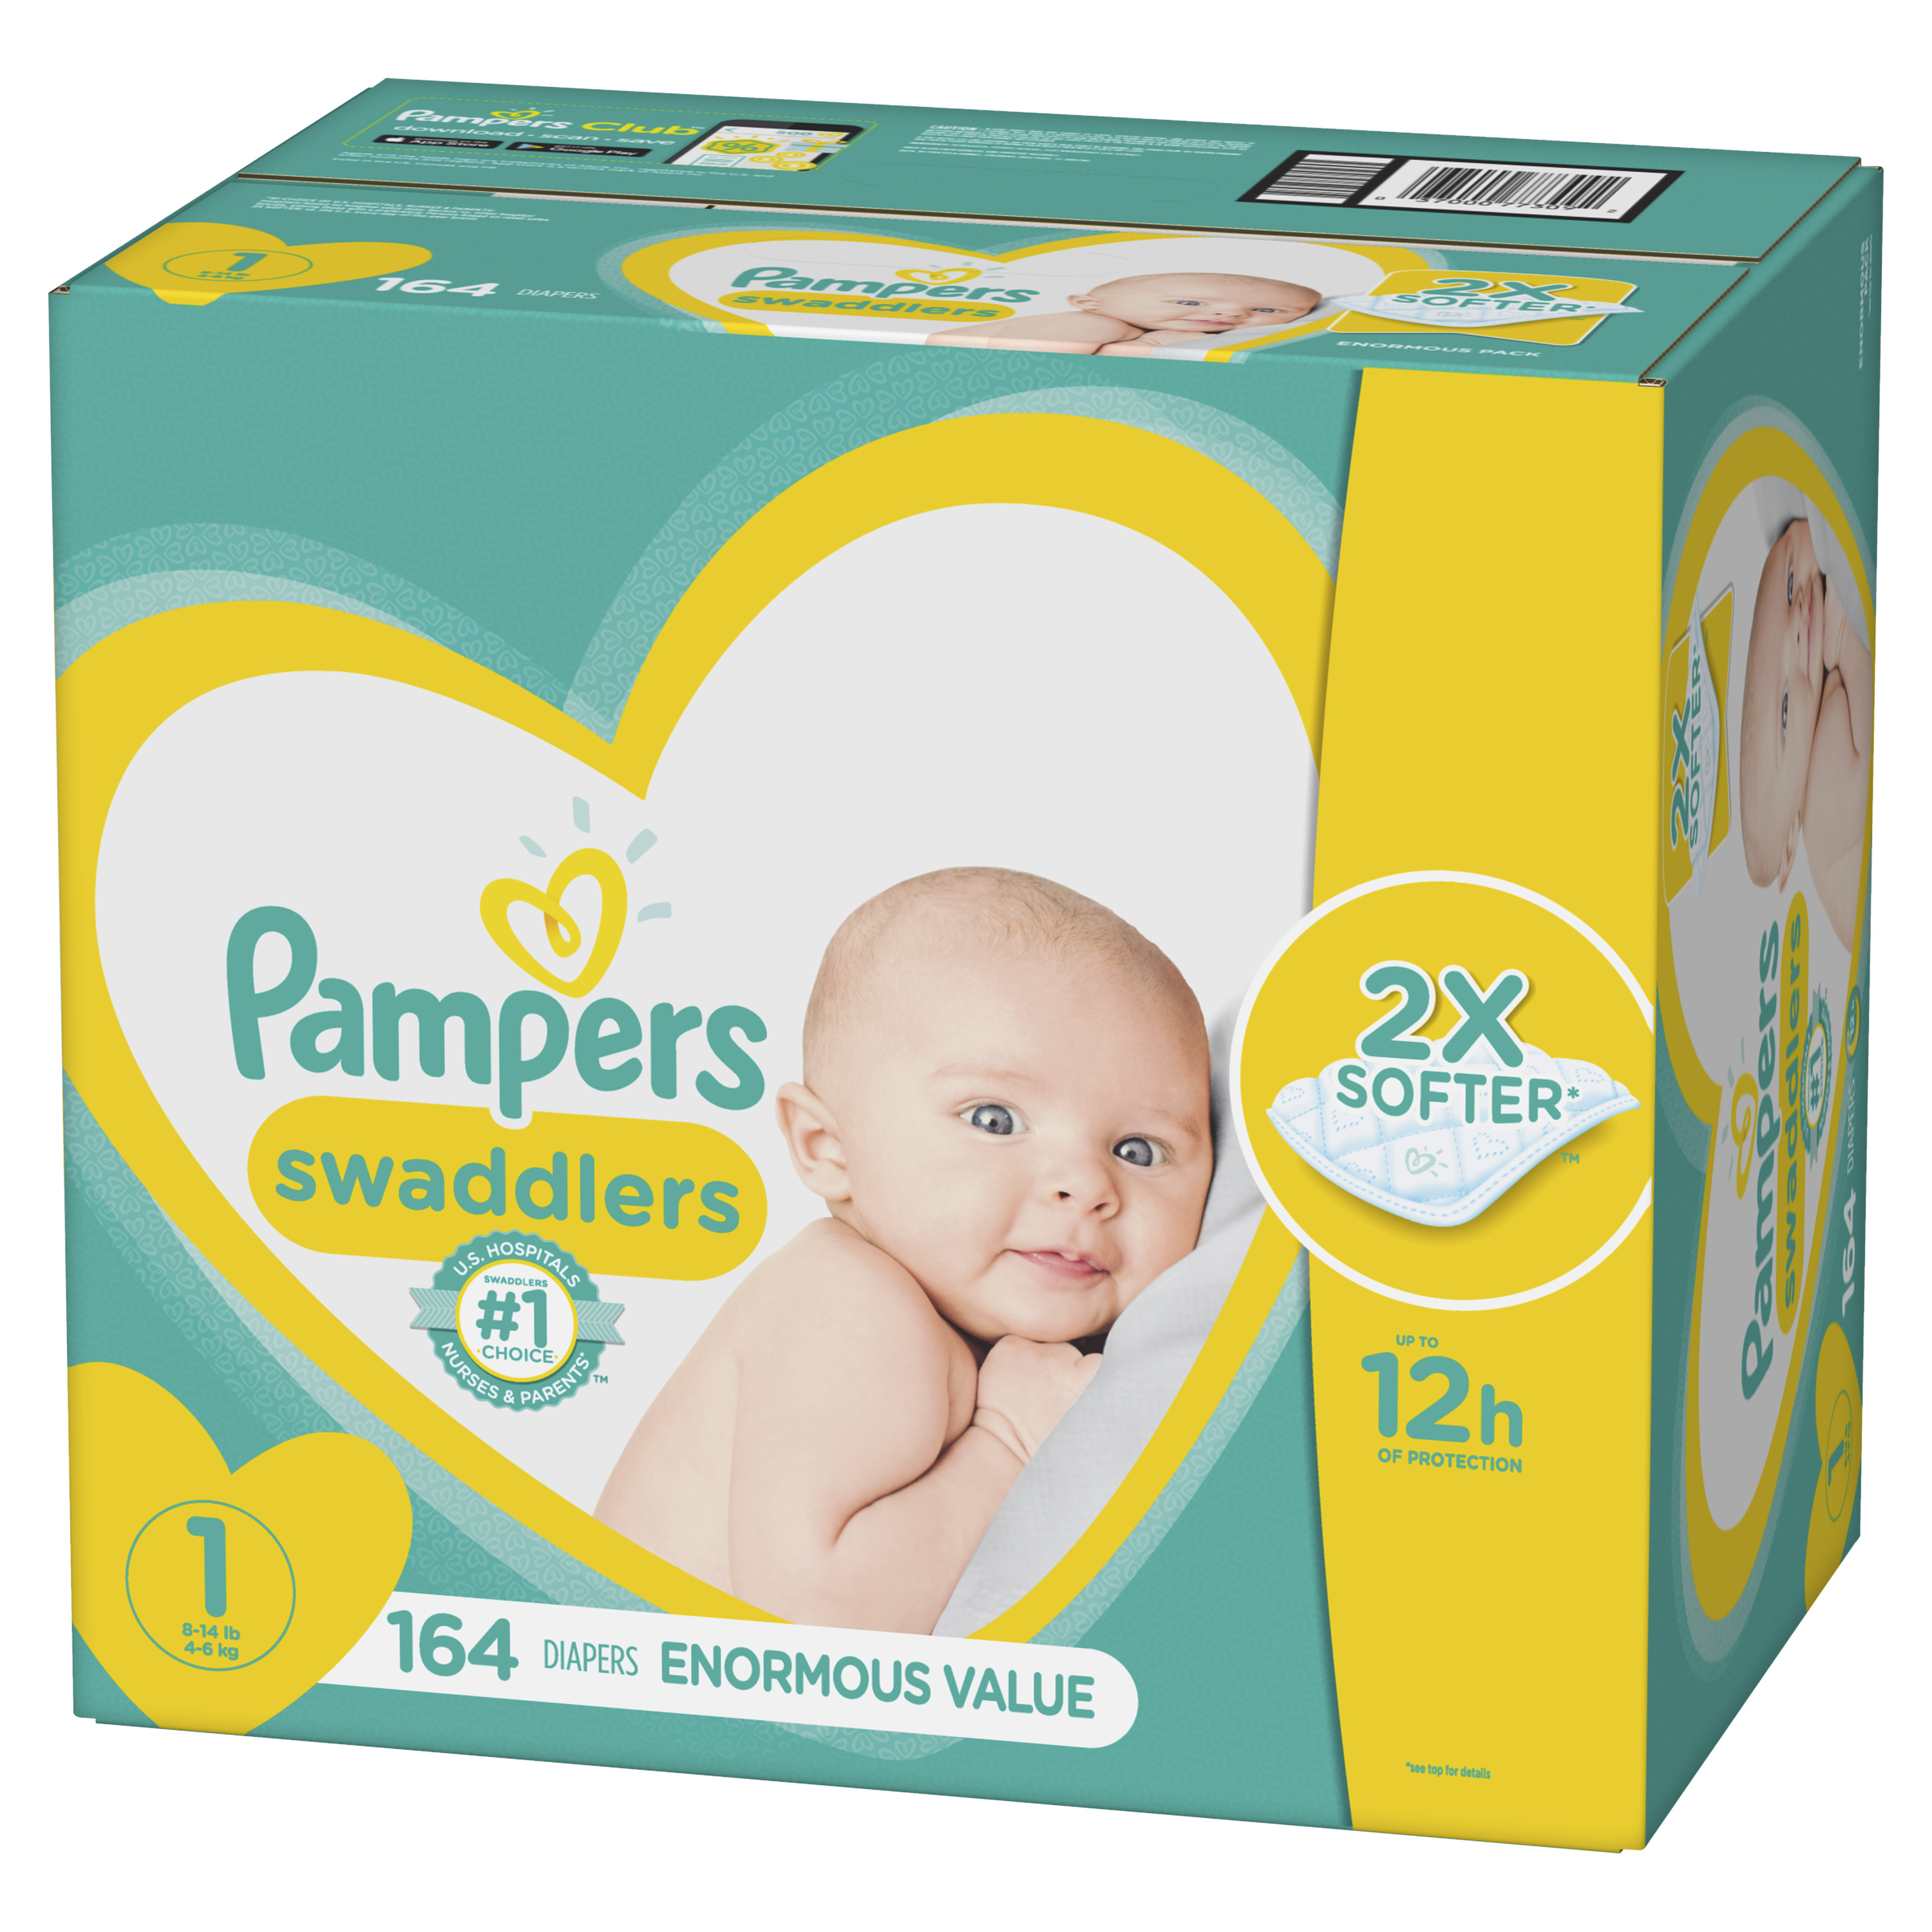 Pampers Swaddlers Diapers VALUE Size Preemie N 1 2 3 4 5 6 NO TAX!! CHEAP!!!